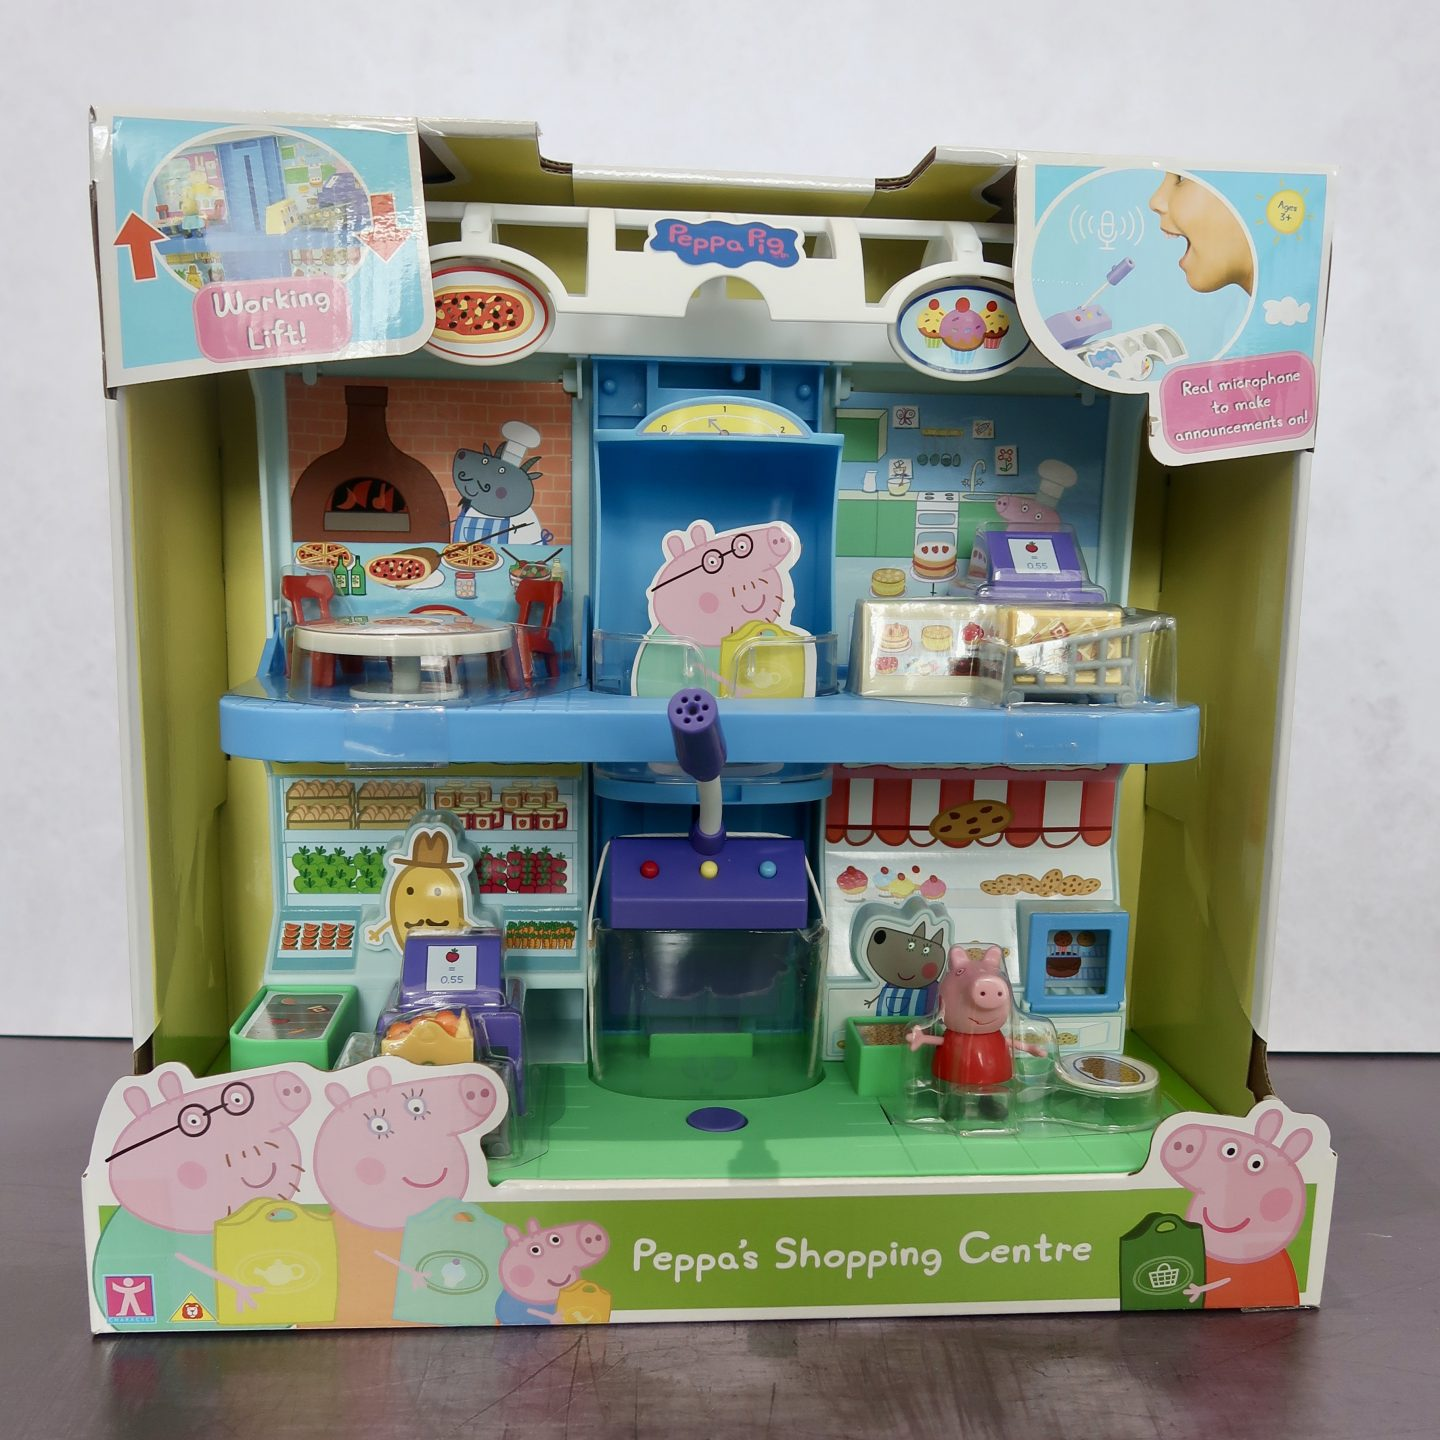 Peppa's Shopping Centre Playset toy